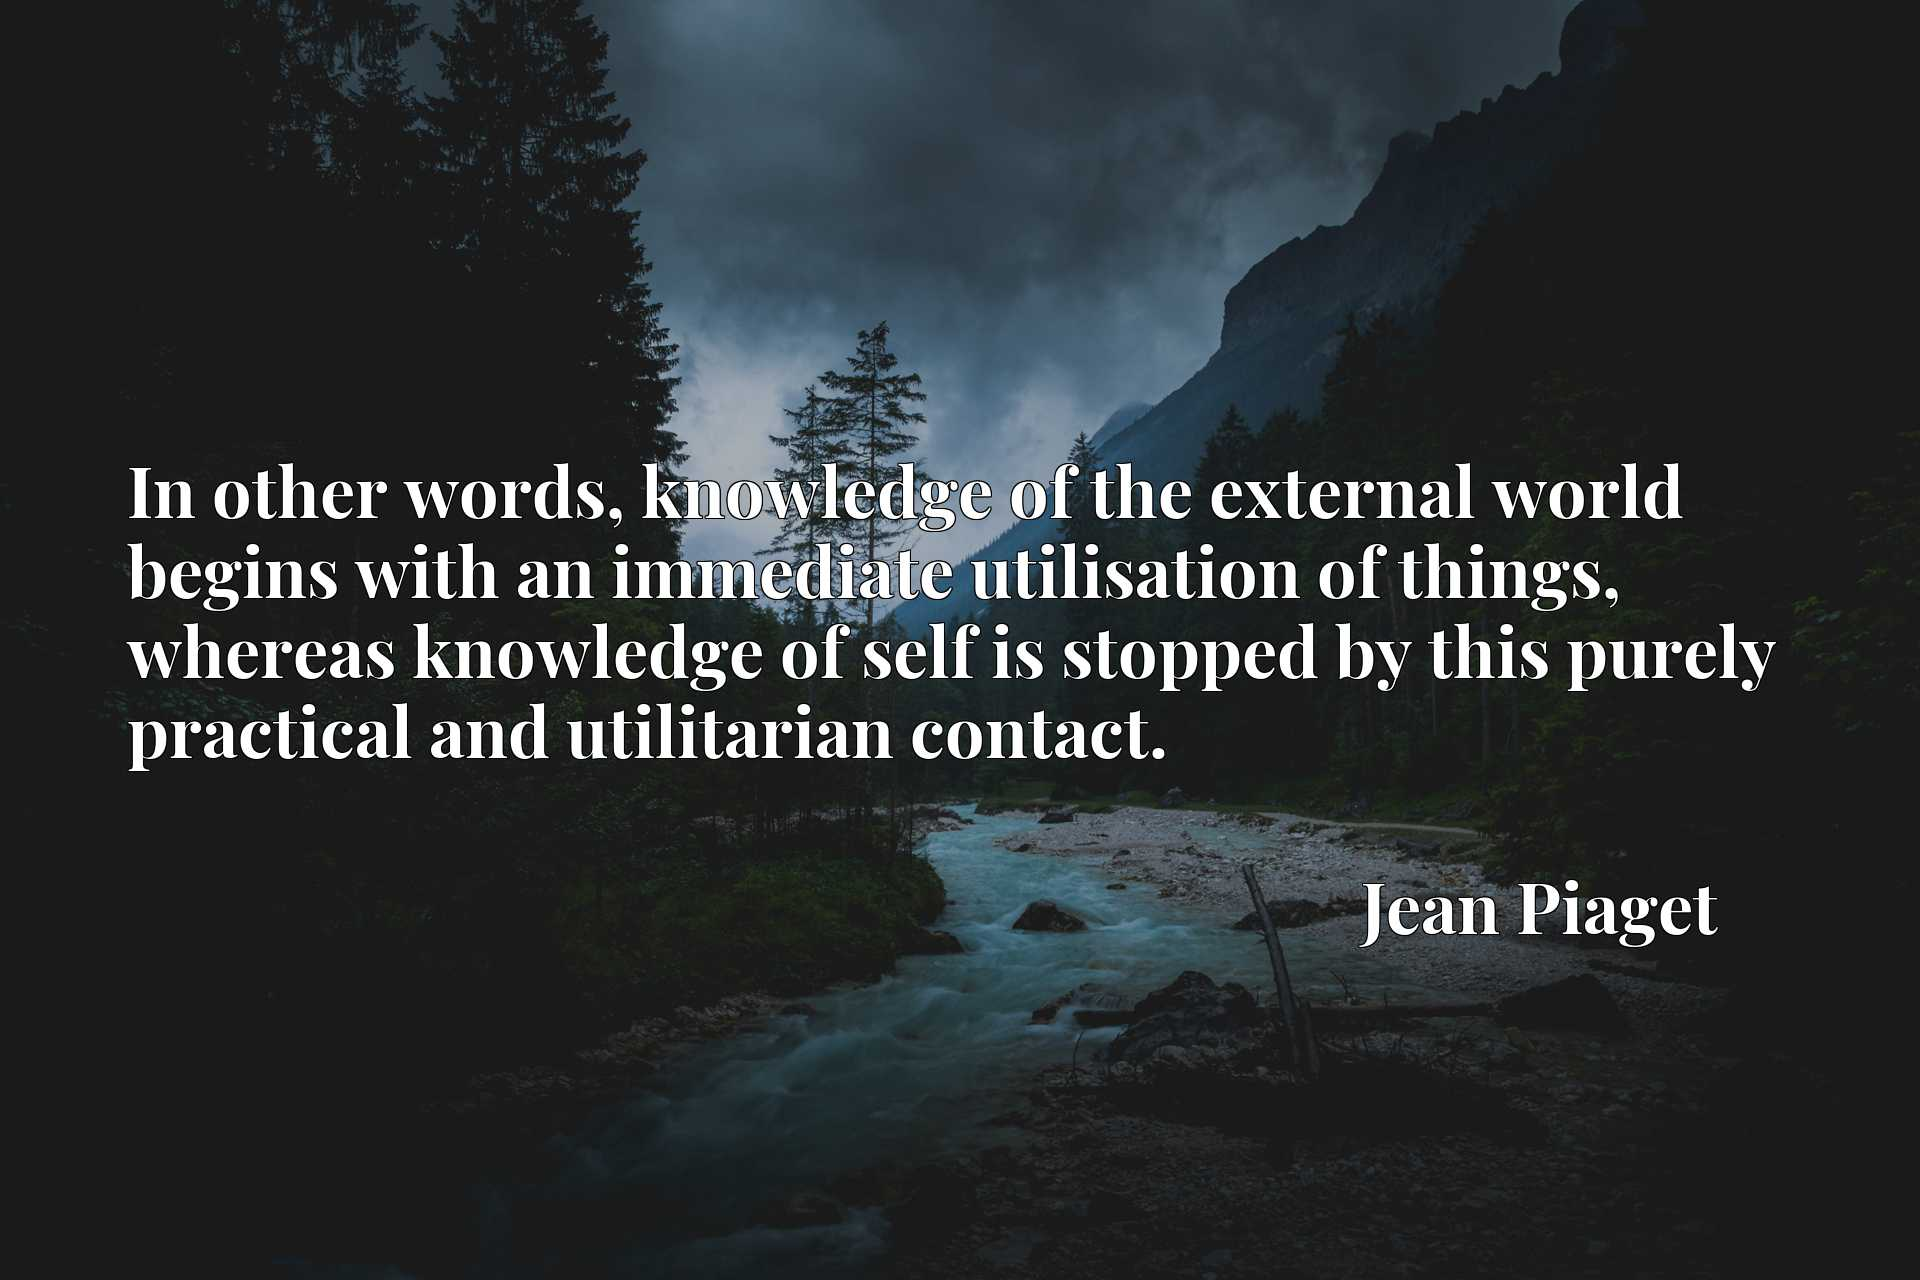 Quote Picture :In other words, knowledge of the external world begins with an immediate utilisation of things, whereas knowledge of self is stopped by this purely practical and utilitarian contact.